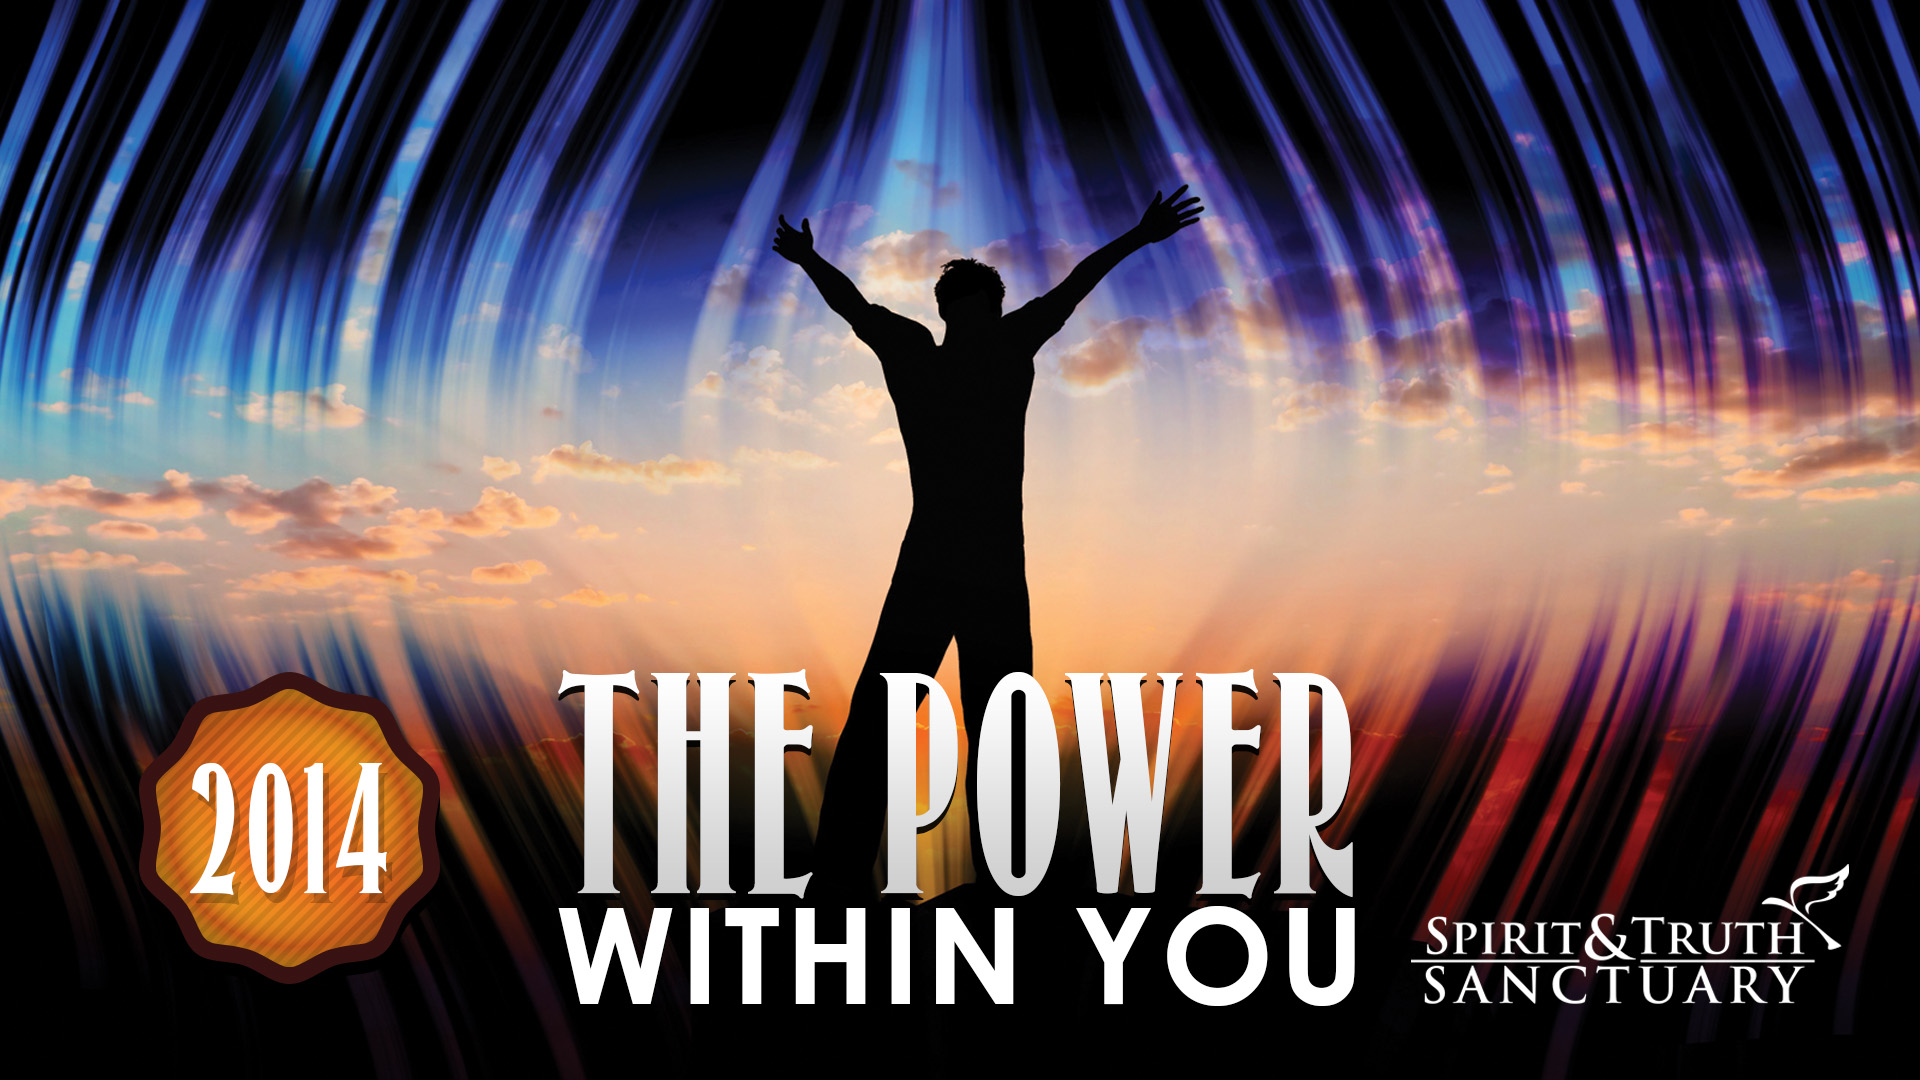 2014 - The Power Within You